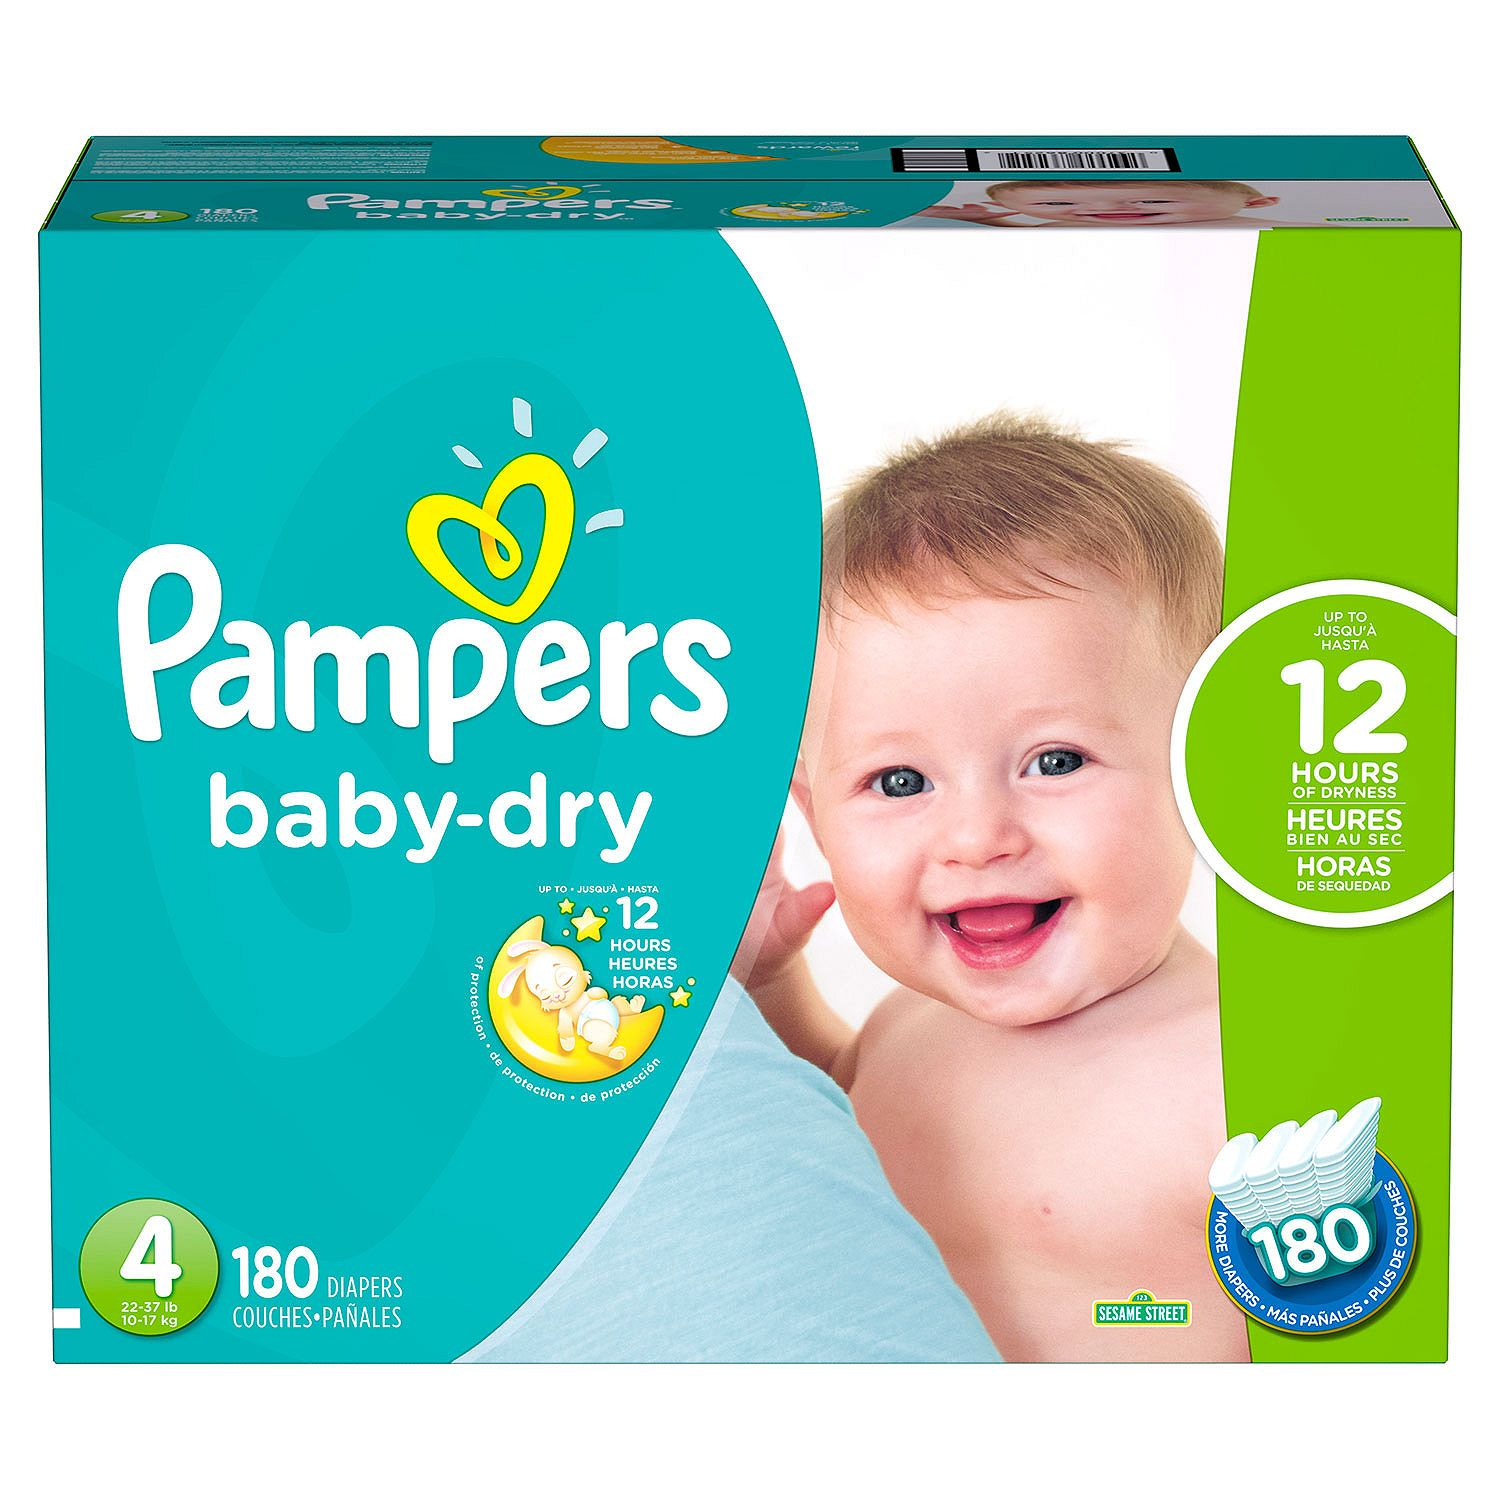 Pampers' Baby Dry Diapers Size 4 180 ct. ( Weight 22- 37 lb.) Bulk Qty, Free Shipping Comfortable, Soft, No... by Branded Diapers